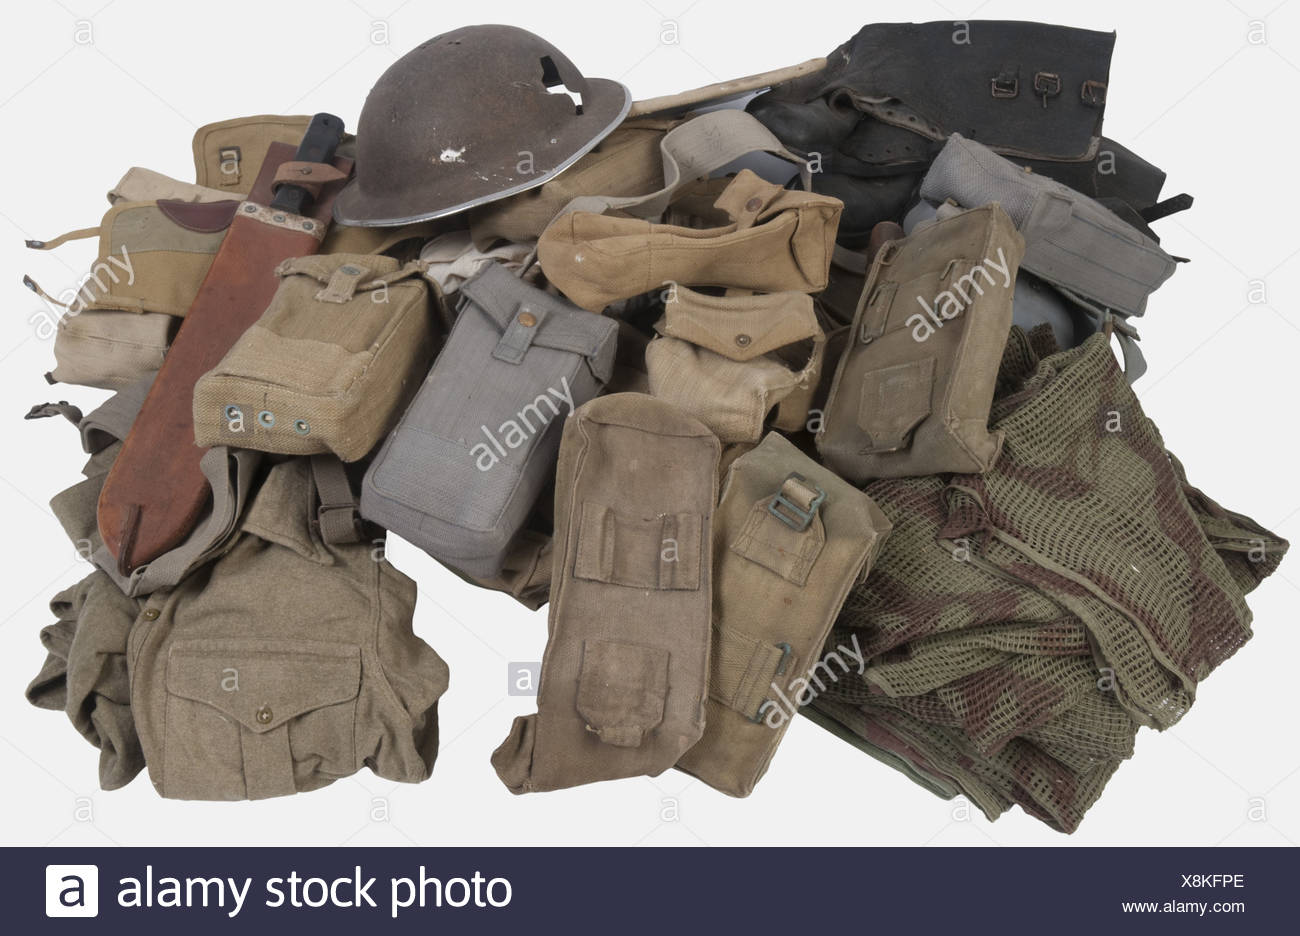 British Army Boots Stock Photos & British Army Boots Stock Images